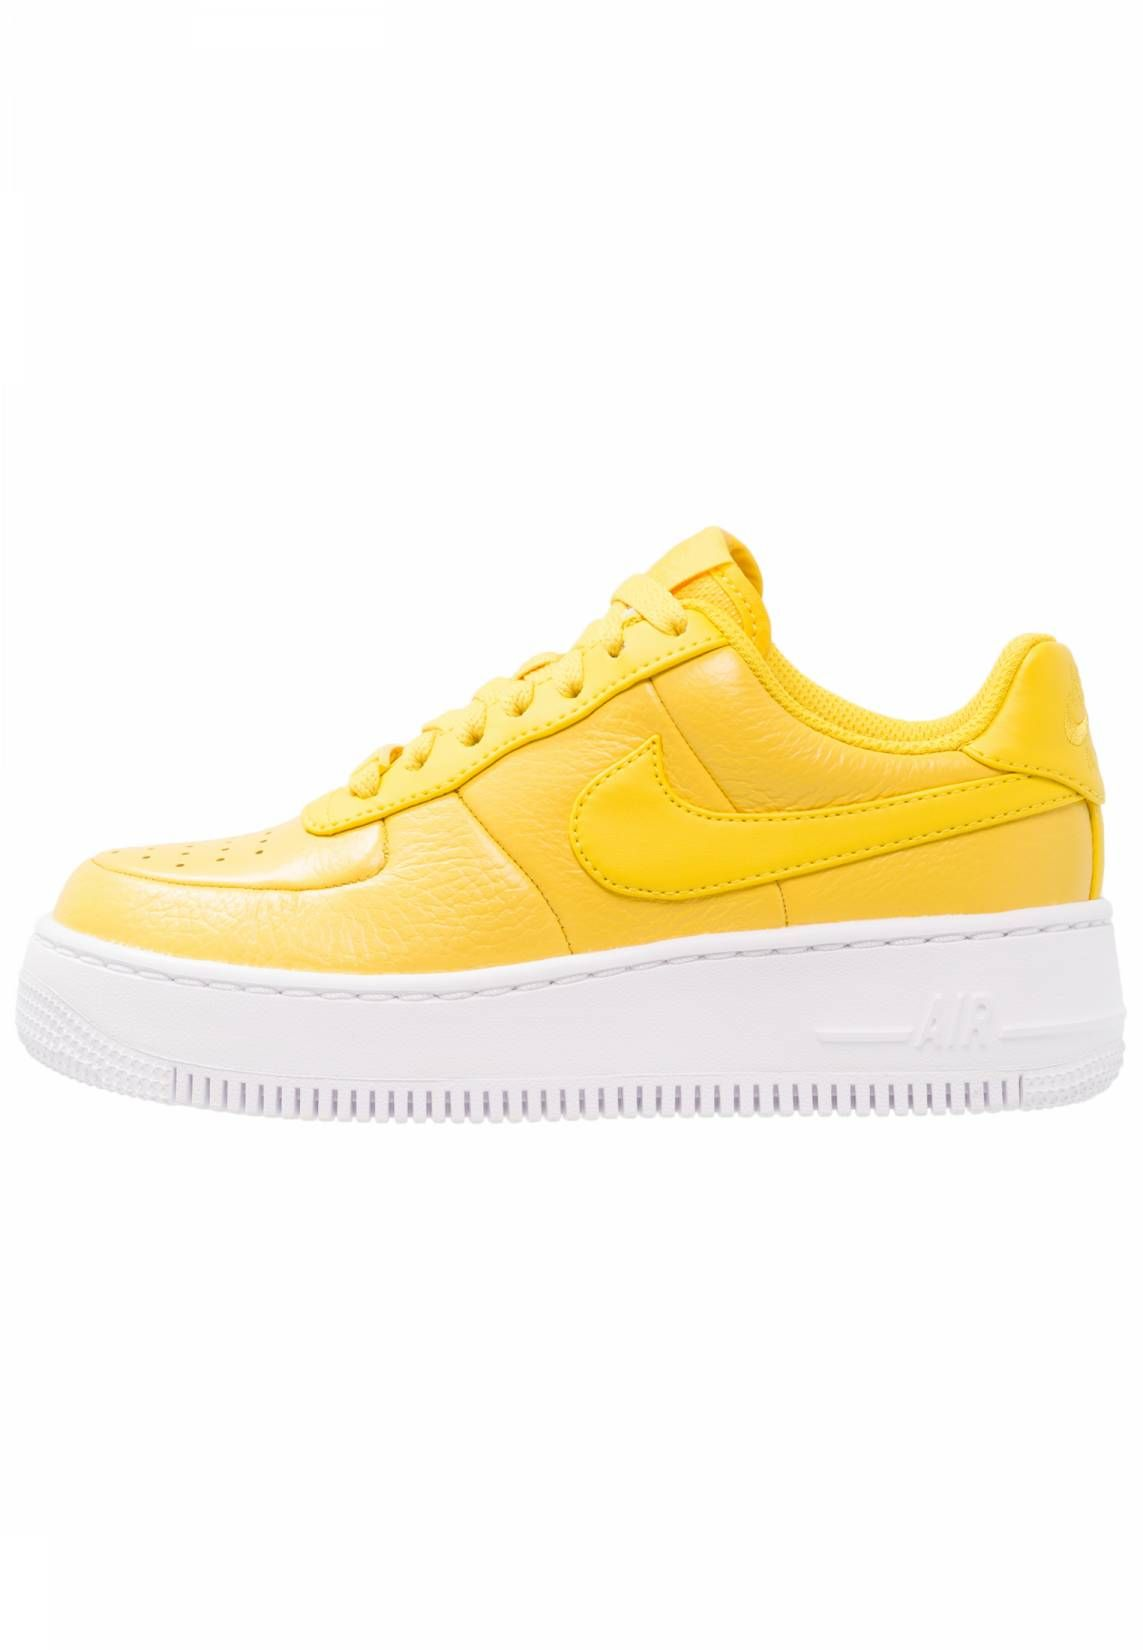 7b7f659e43 Nike Sportswear. AIR FORCE 1 UPSTEP PRM LX - Sneaker low - vivid sulfur/